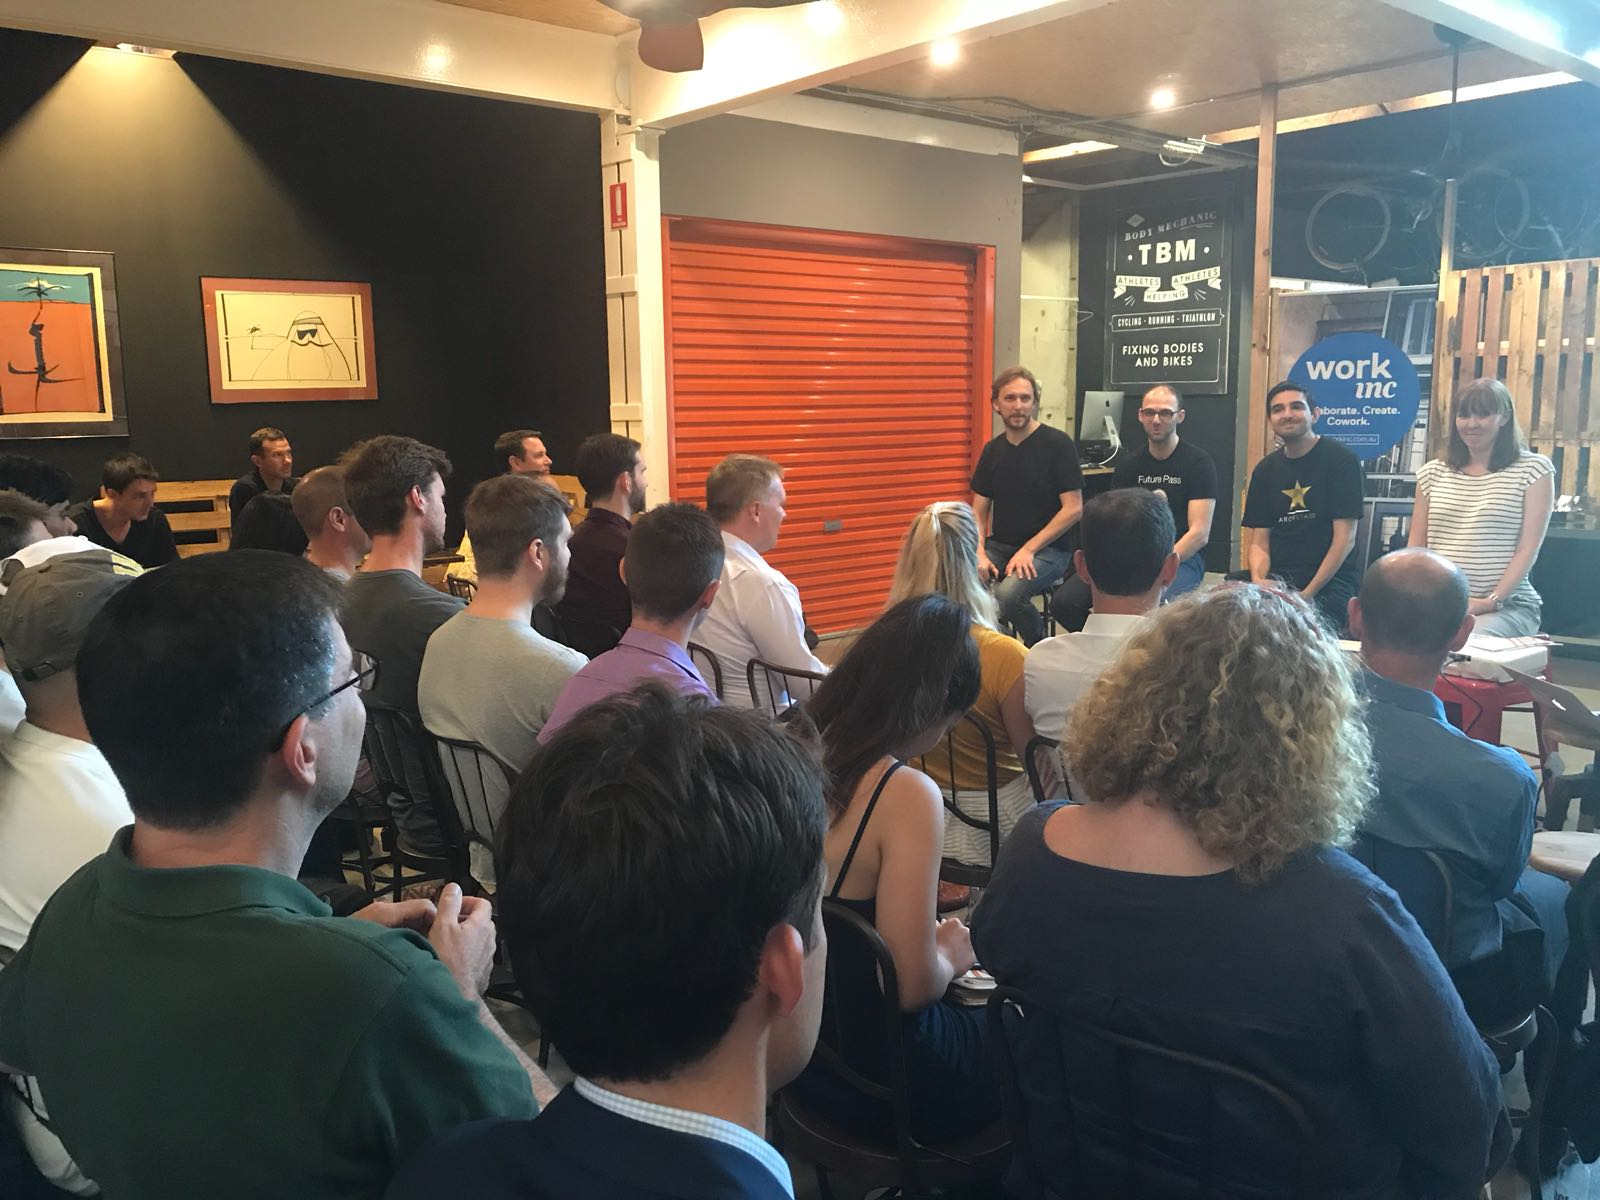 Photo of people in the room and Mark Baartse, Chris Iona, Robert Coorey & Rebekah Campbell speaking at NSIN's Accelerating your Startup Event